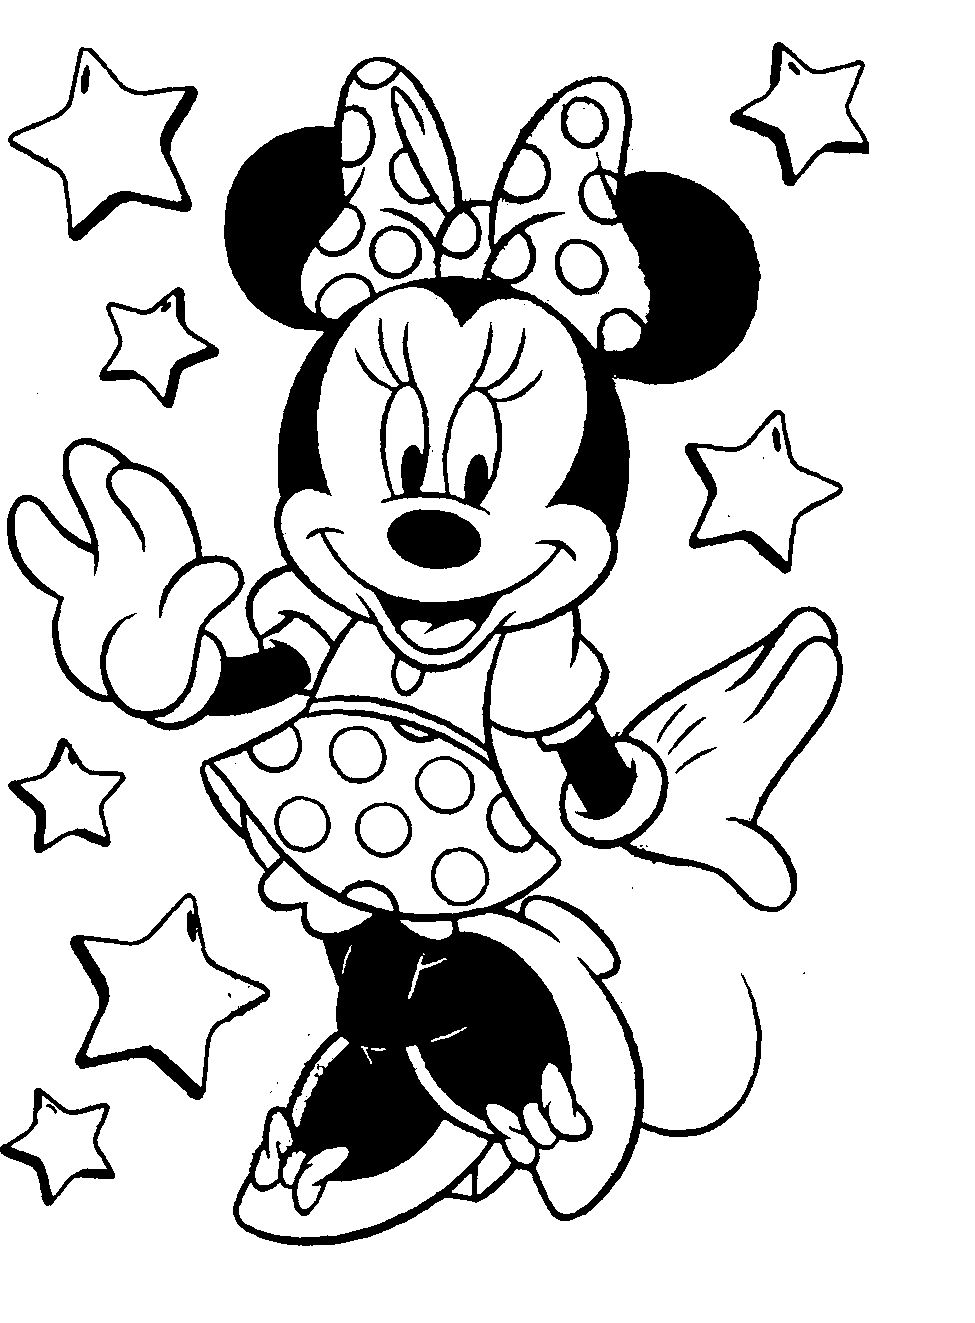 Minnie Mouse Coloring Pages To Print Designs Trend